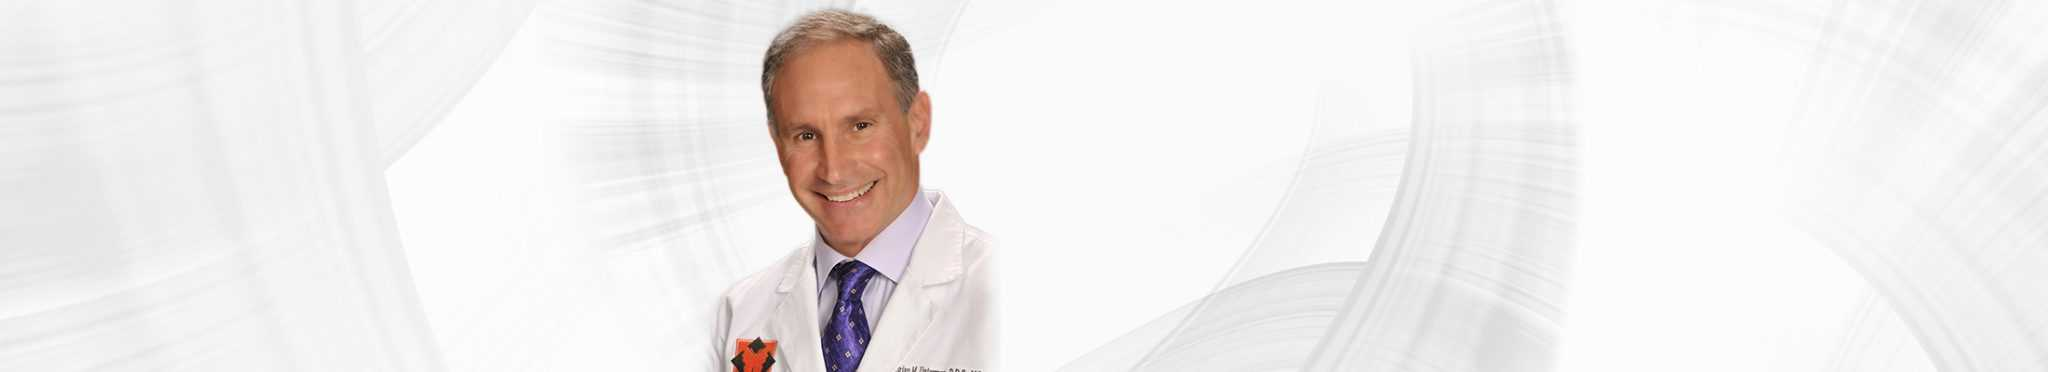 Dr Brian M. Unterman - Northwest Oral & Maxillofacial Surgery